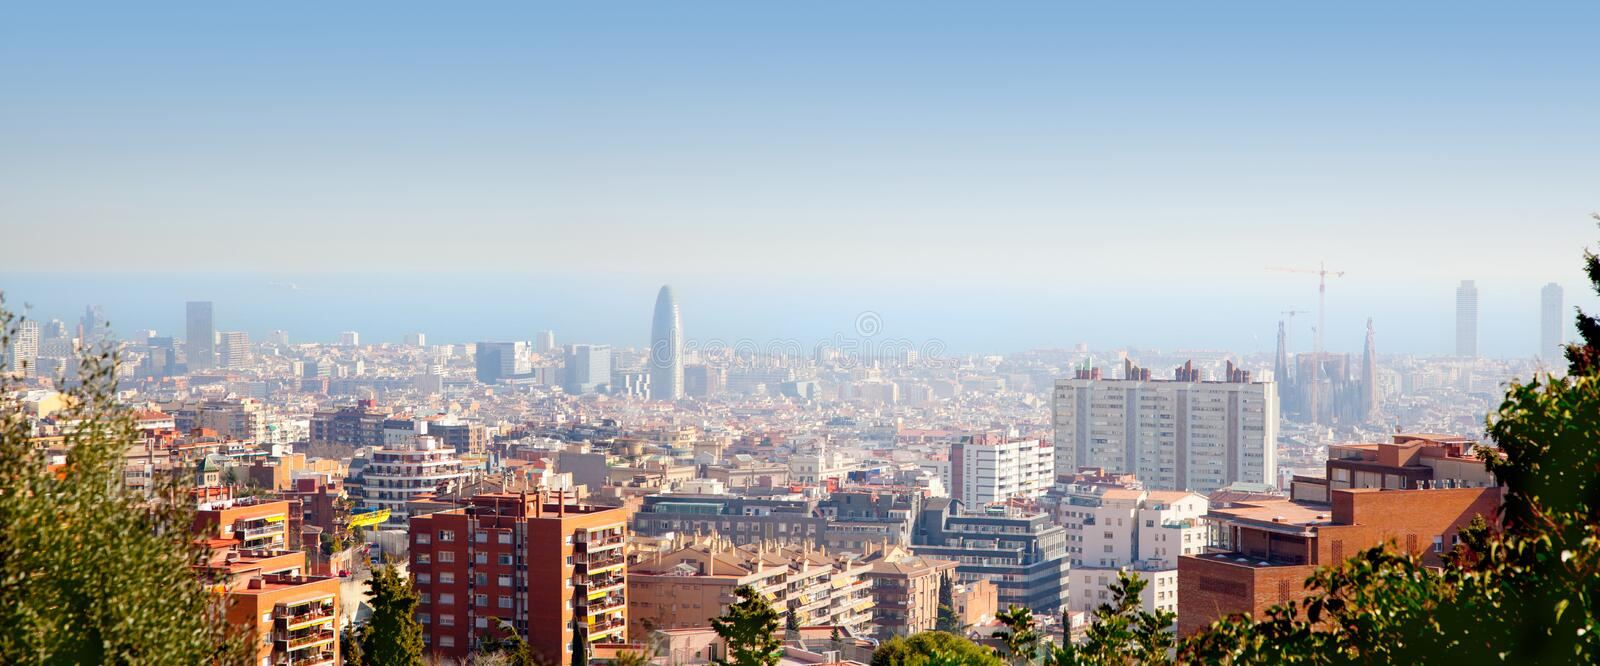 Download Barcelona Skyline With Mediterranean Sea View Stock Photo - Image of city, horizontal: 25057108